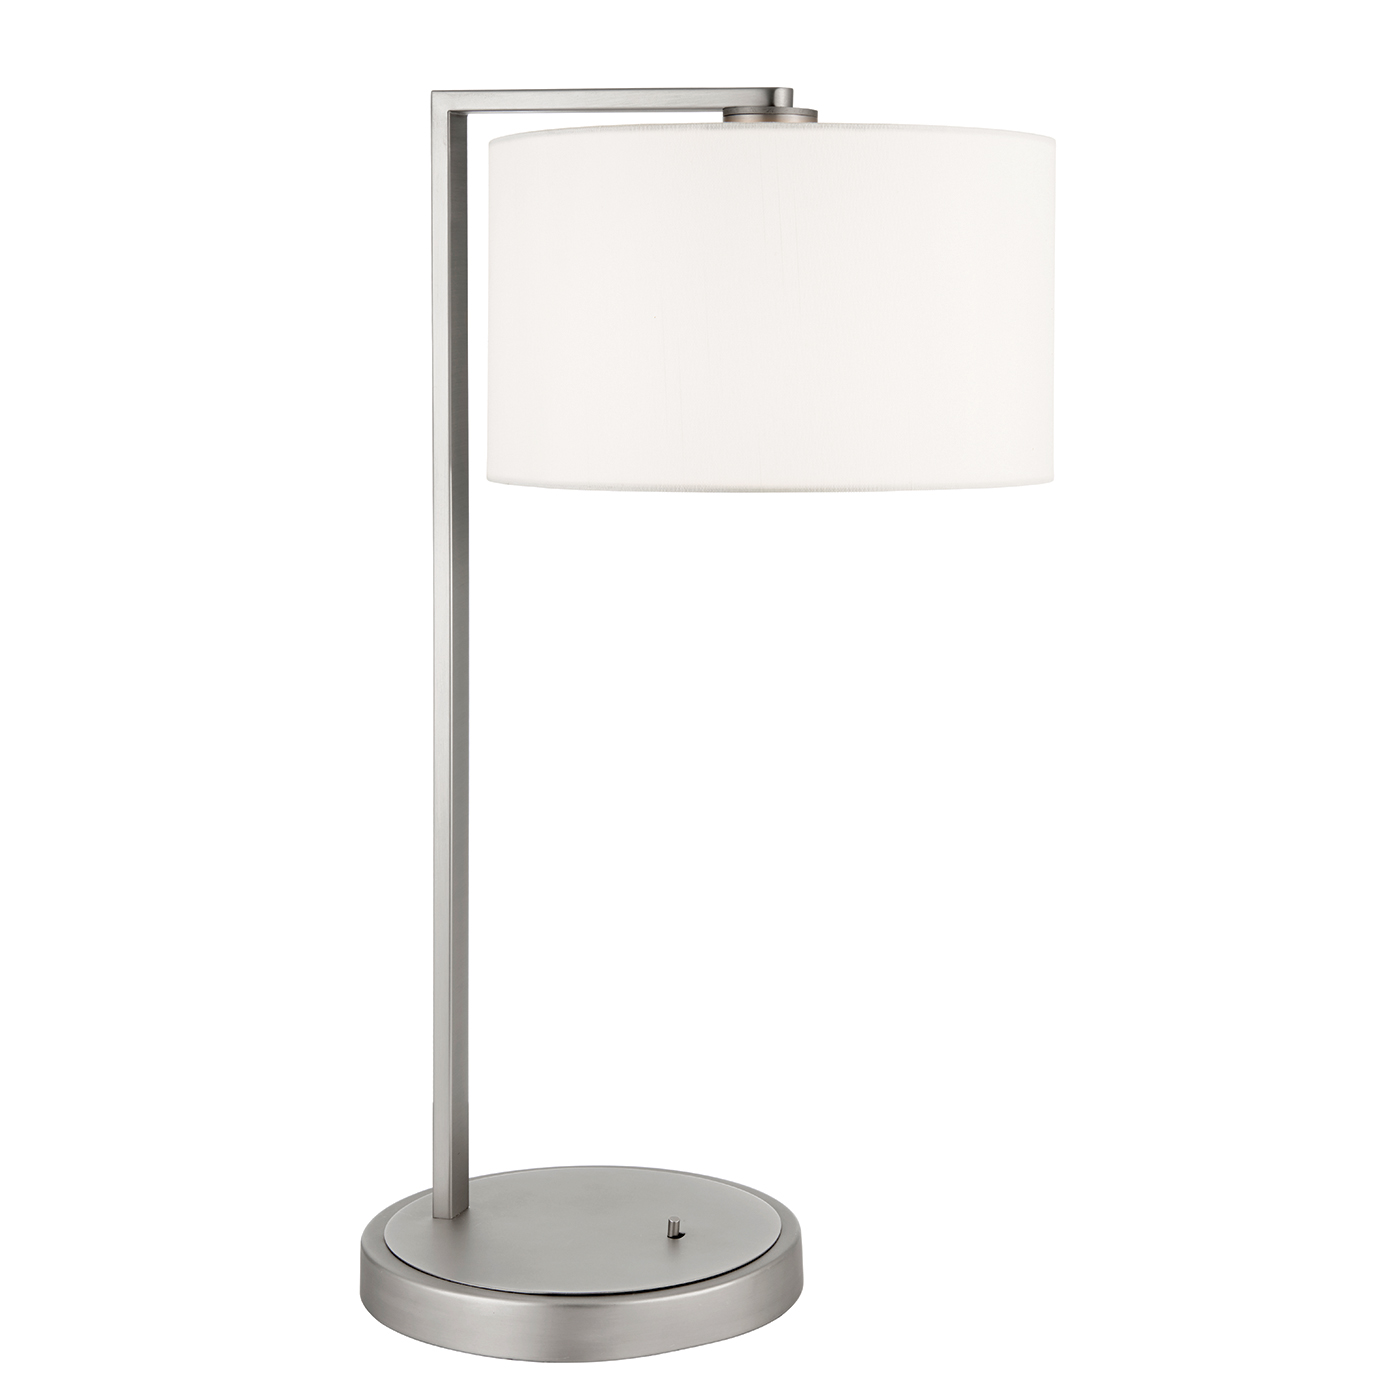 Endon 67634 Daley Table Light 40W Nic